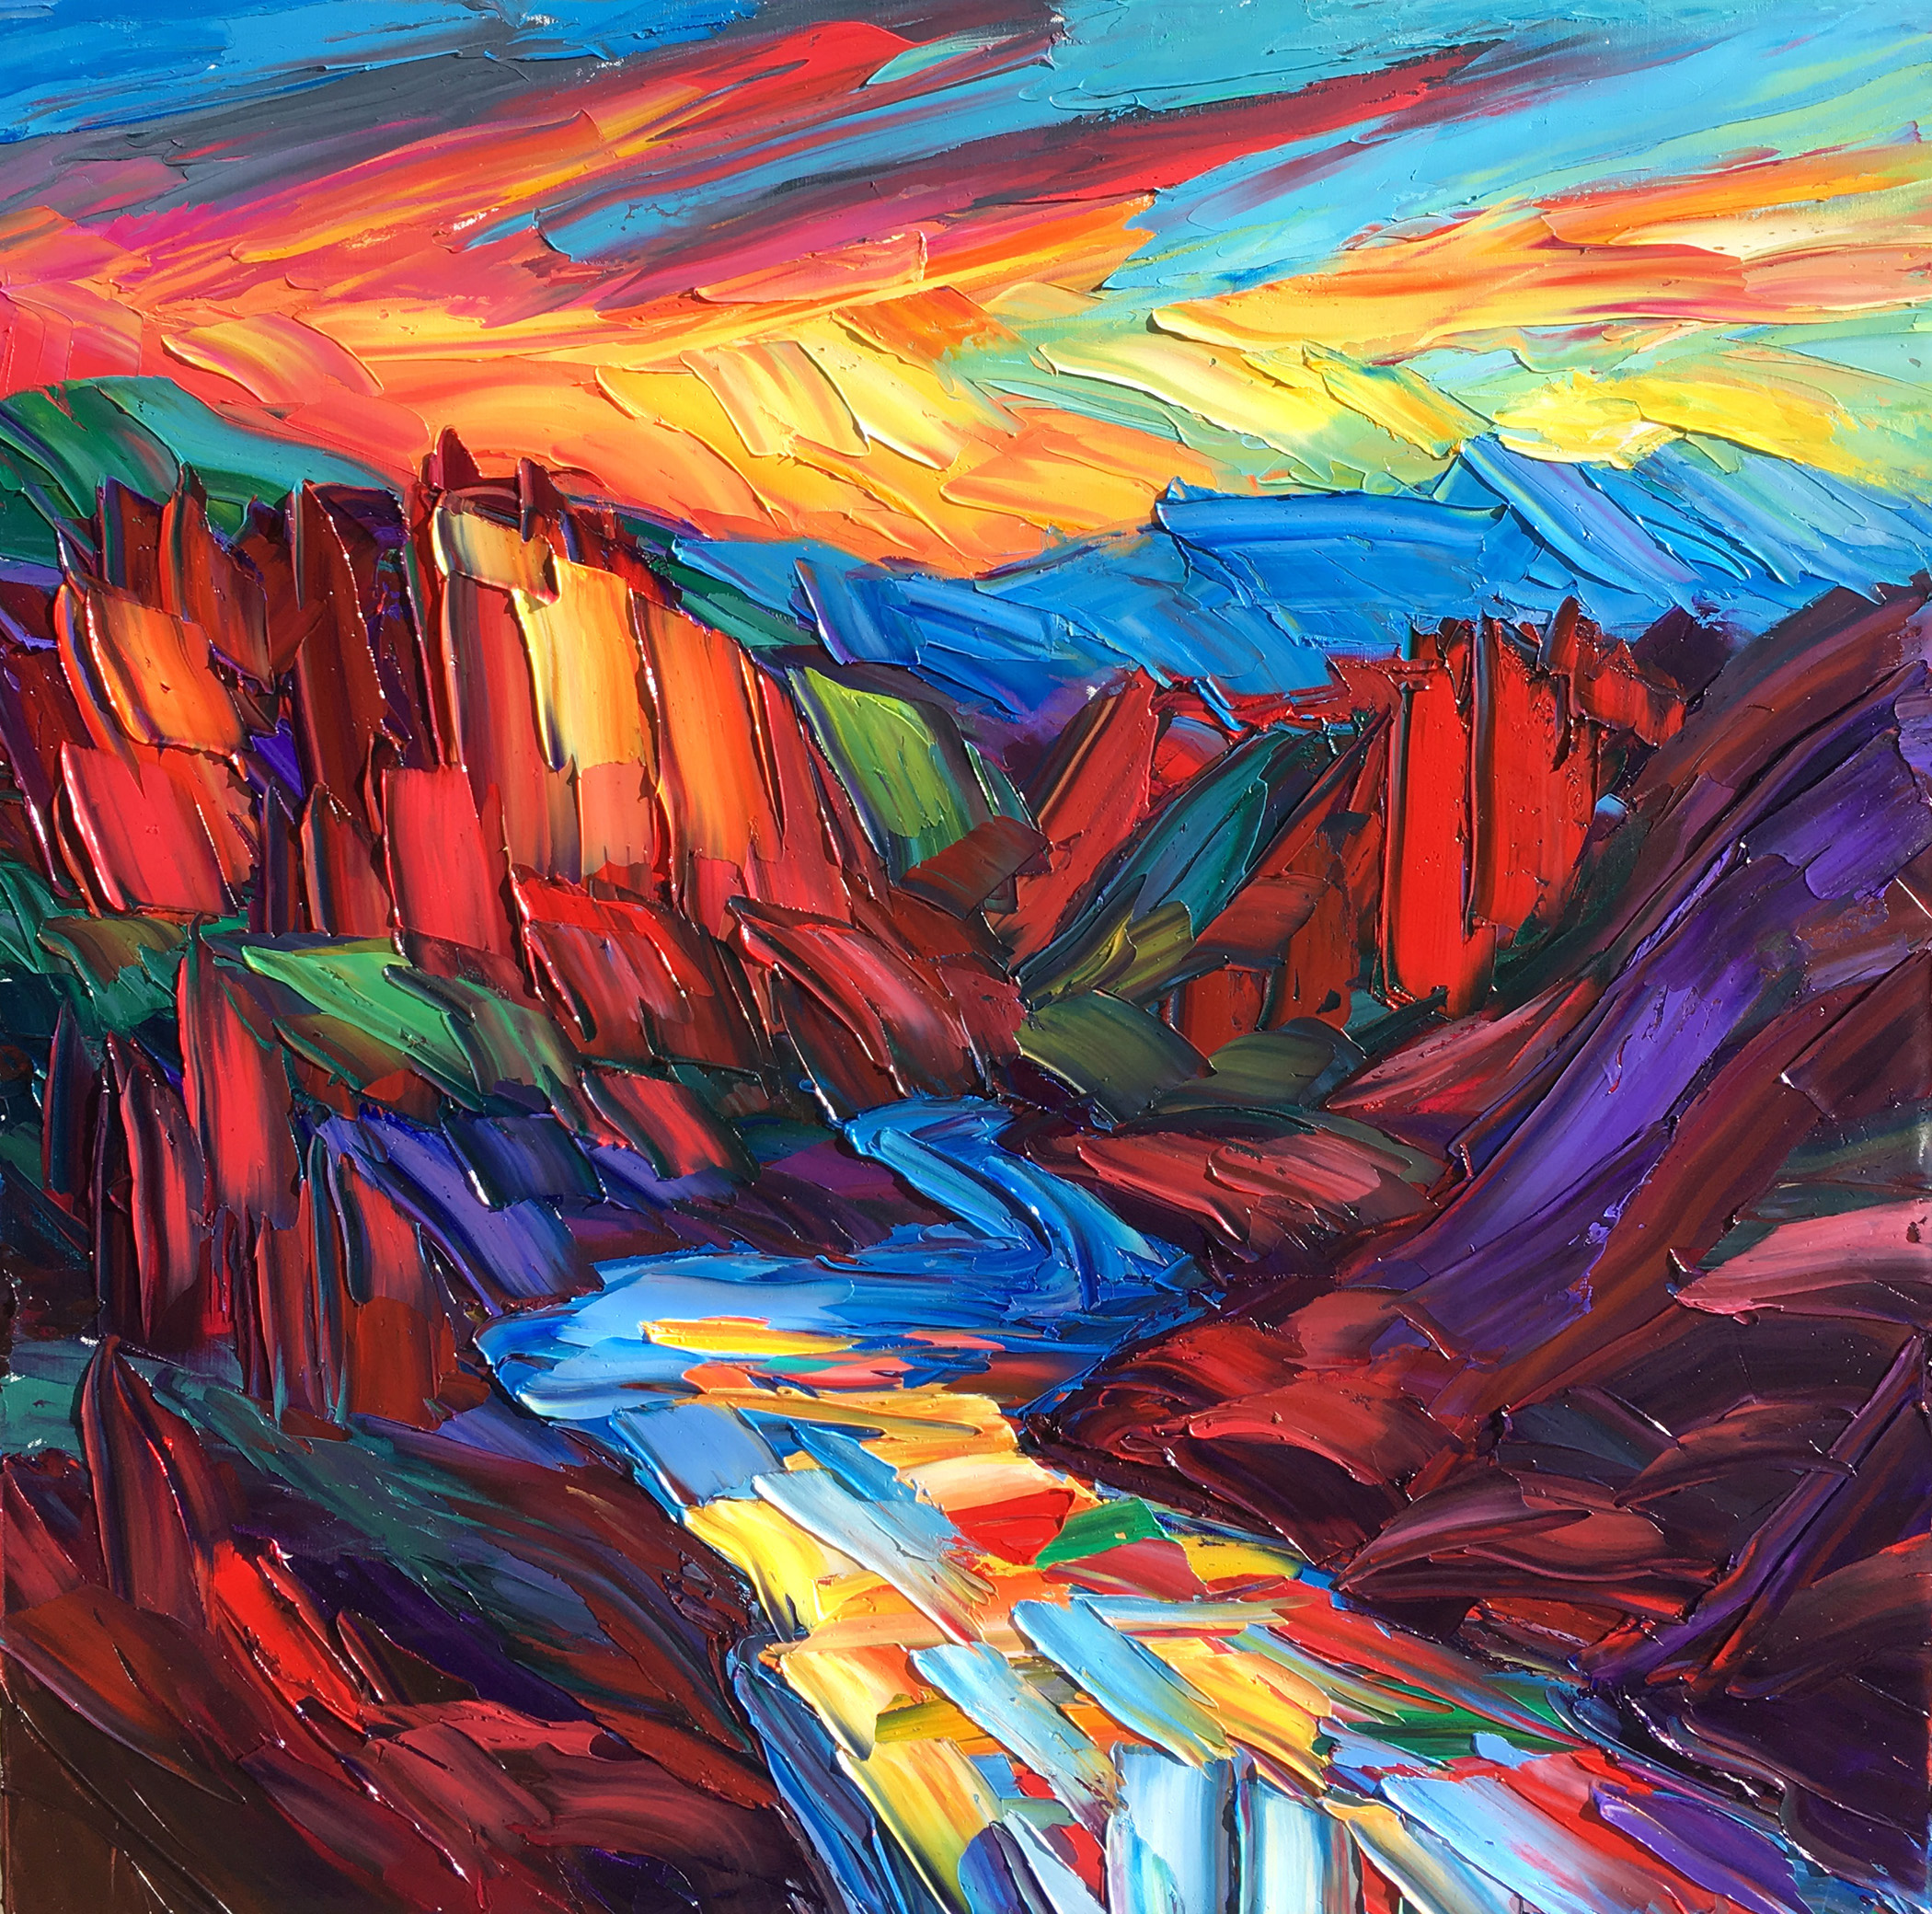 Greg Dye - http://www.gregdye.comUsing a palette knife I apply spontaneous strokes of thick oil paint, one on top of the other. I do not think about it, I just react to the paint and the emotional energy within myself.